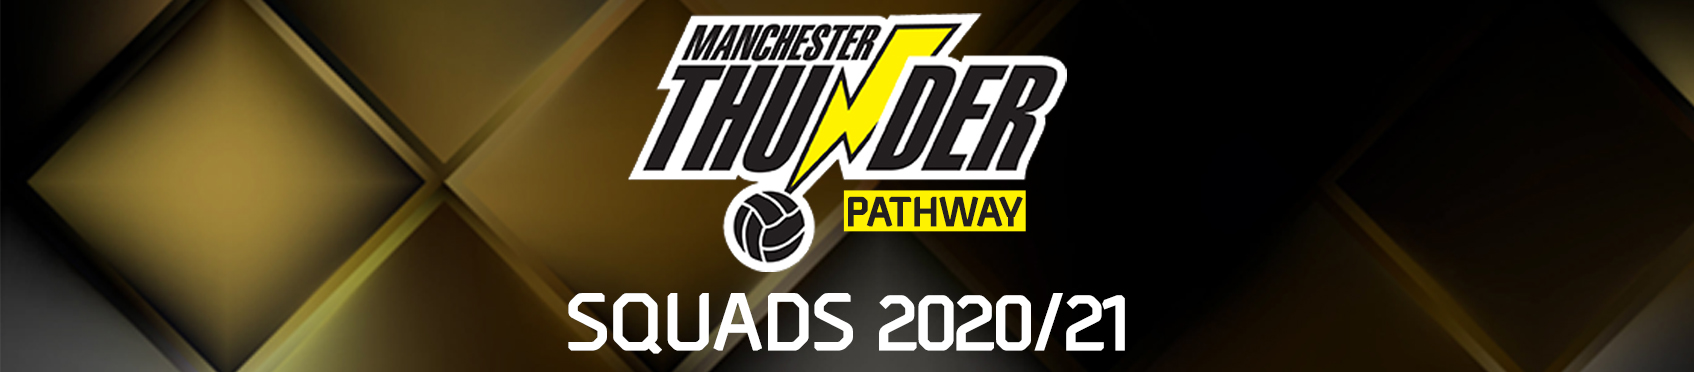 Manchester Thunder Pathway Squads